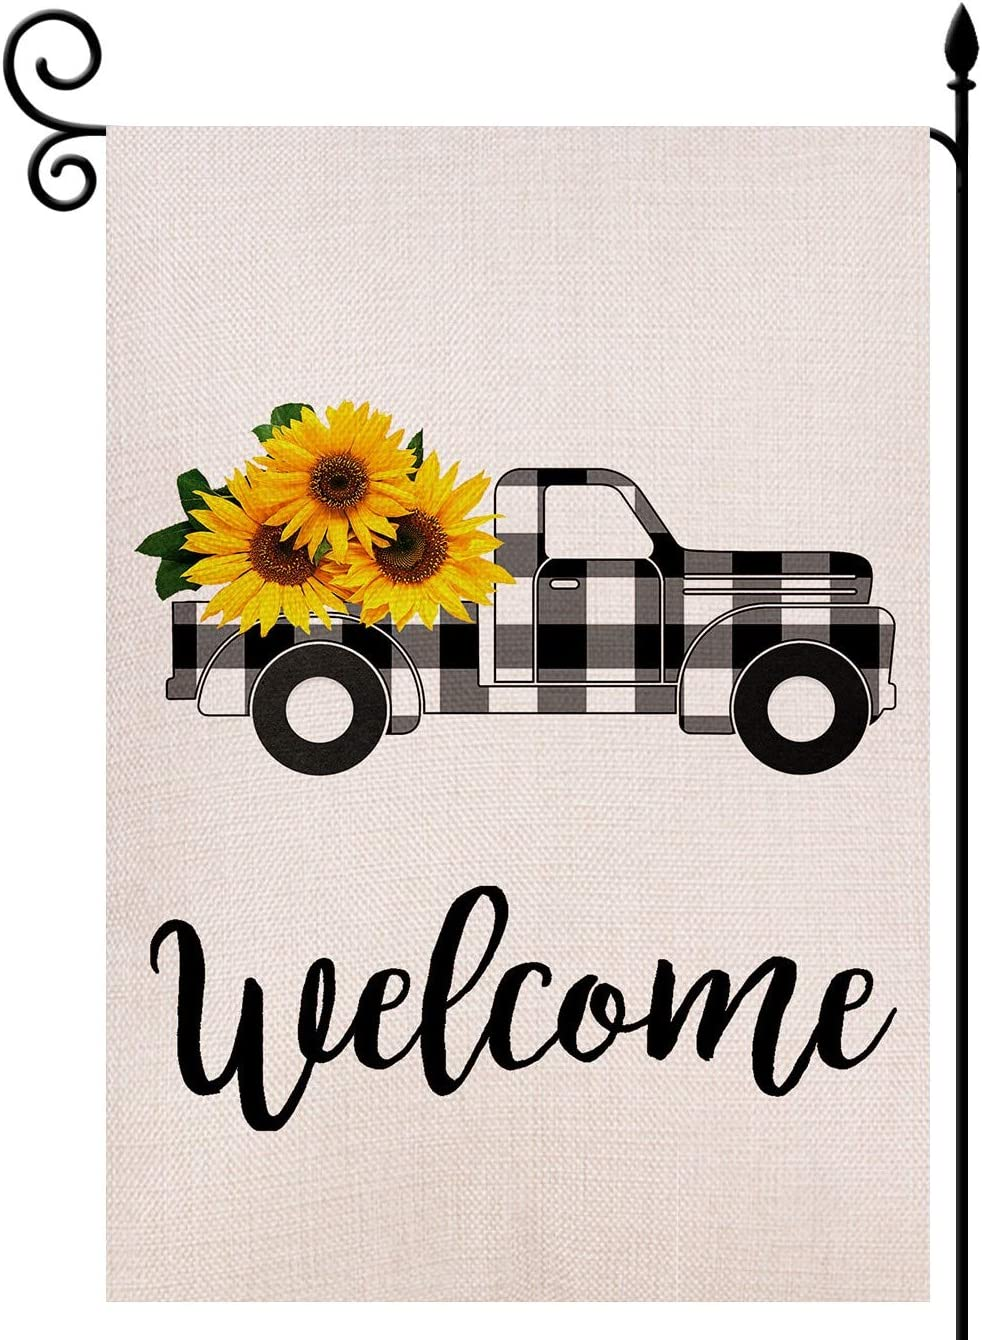 Lovegarden Welcome Sunflower Truck Garden Flag Vertical Double Sided 12 5 X 18 Inch Black And White Buffalo Check Plaid Rustic Truck Farmhouse Burlap For Spring Summer Outdoor Indoor Decoration